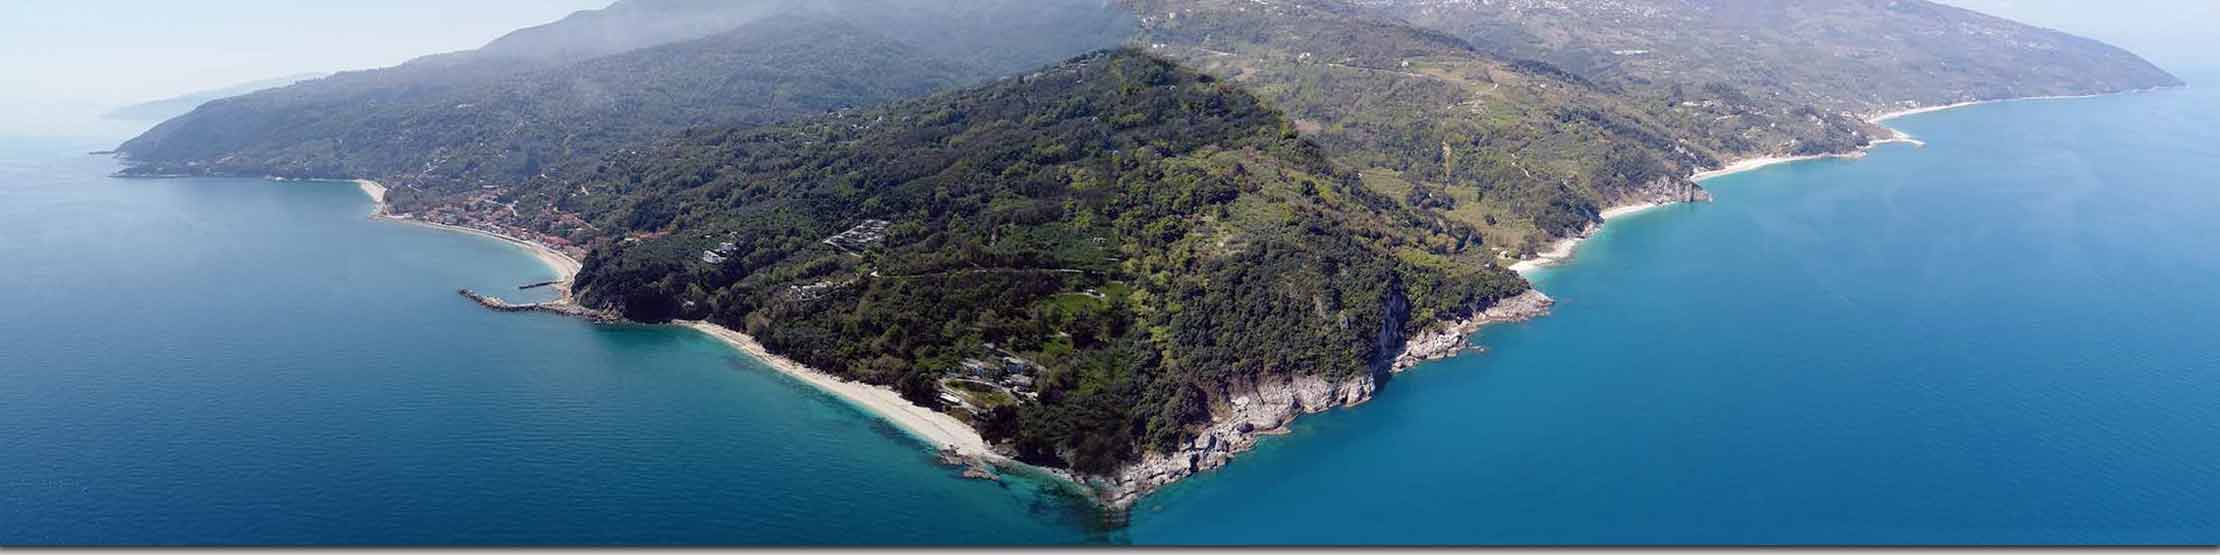 Pelion Beaches from Mylopotamos to Chorefto